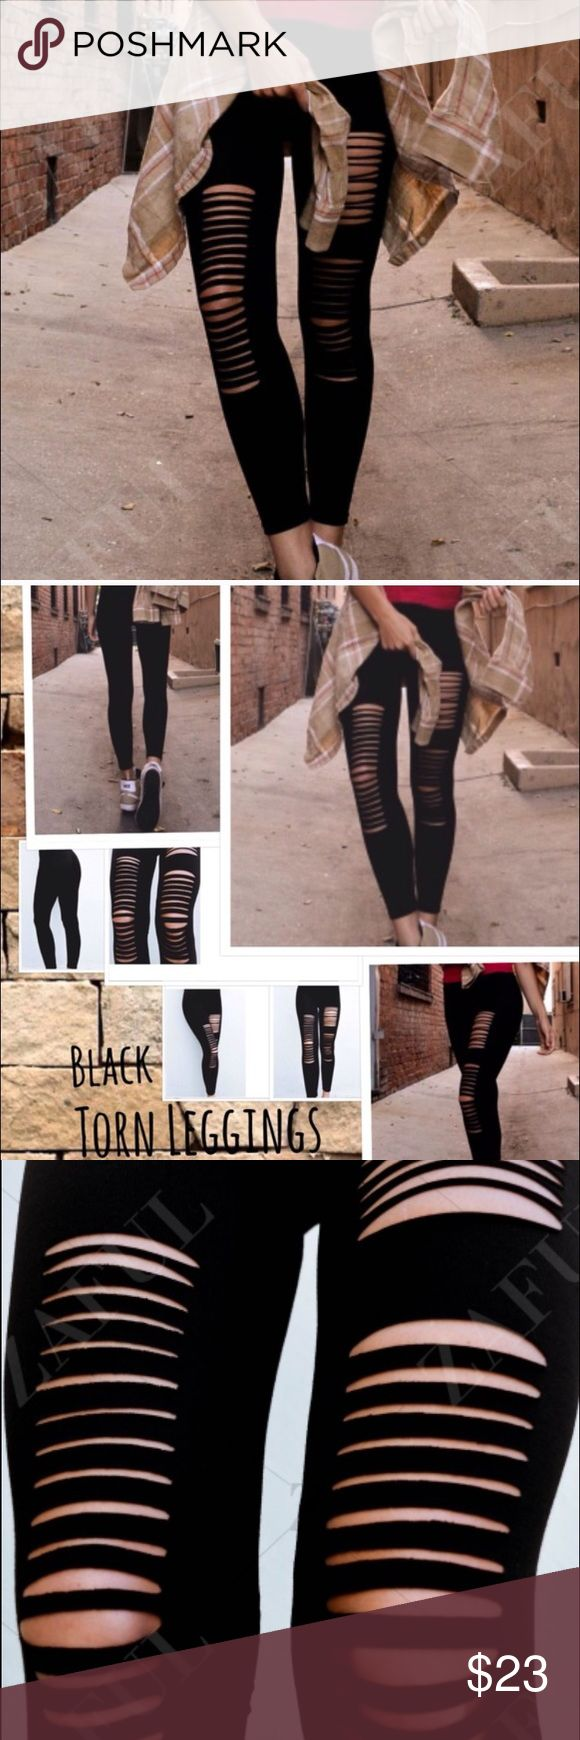 🆕RESTOCKED NEW LISTING BLACK TORN LEGGINGS 🆕 Basic black one size fits most leggings with cut outs. Nice stretch. These are very popular. these leggings do not disappoint, extremely cute but not over done. High waisted, 100% cotton material and casual trendy style. Great stretch for such desired comfort. Fits best small and medium. Large might be slightly tight but still very stretchy smooth soft material. Laying flat, 10/2 inches wide. 25 inch inseam. BN Still in online bag Pants Leggings